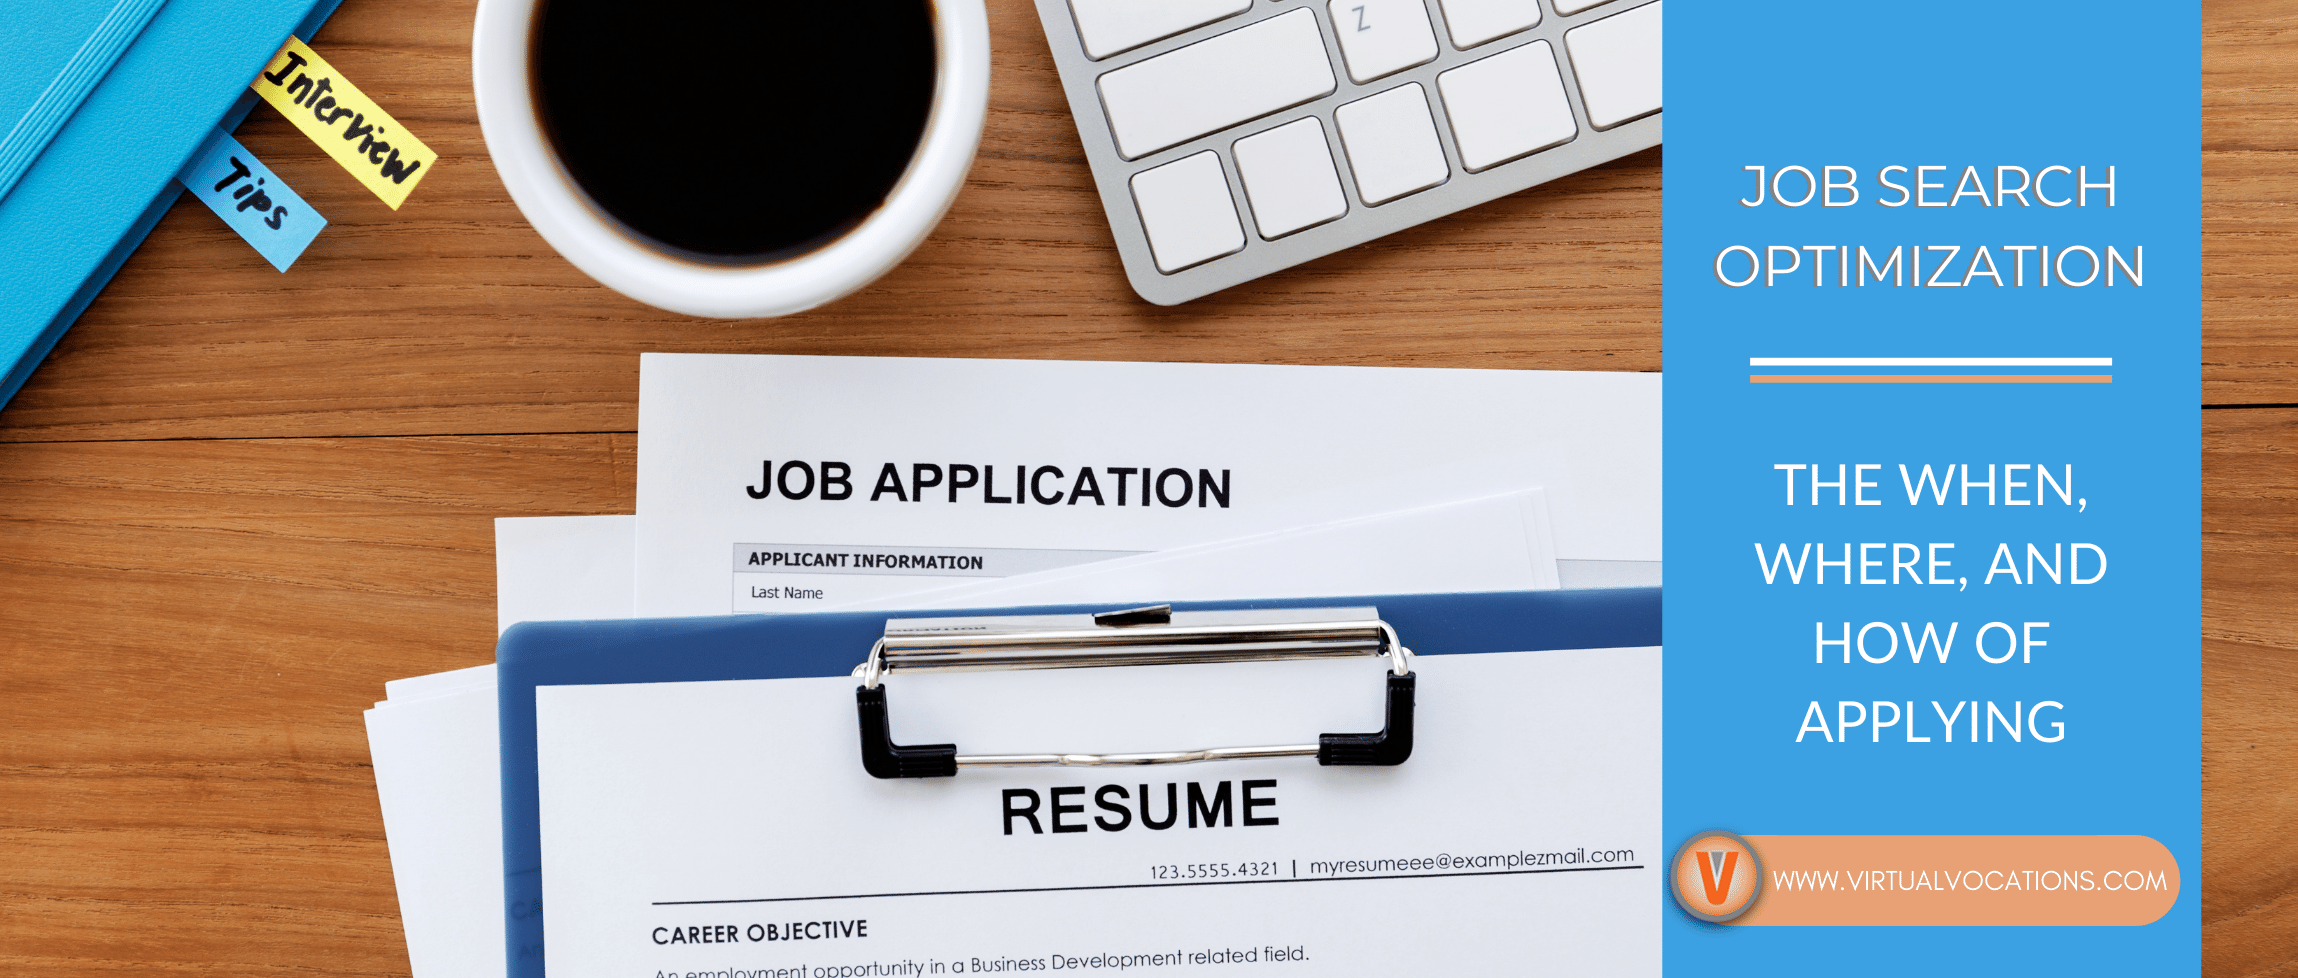 Learn how to optimize your job search when applying.